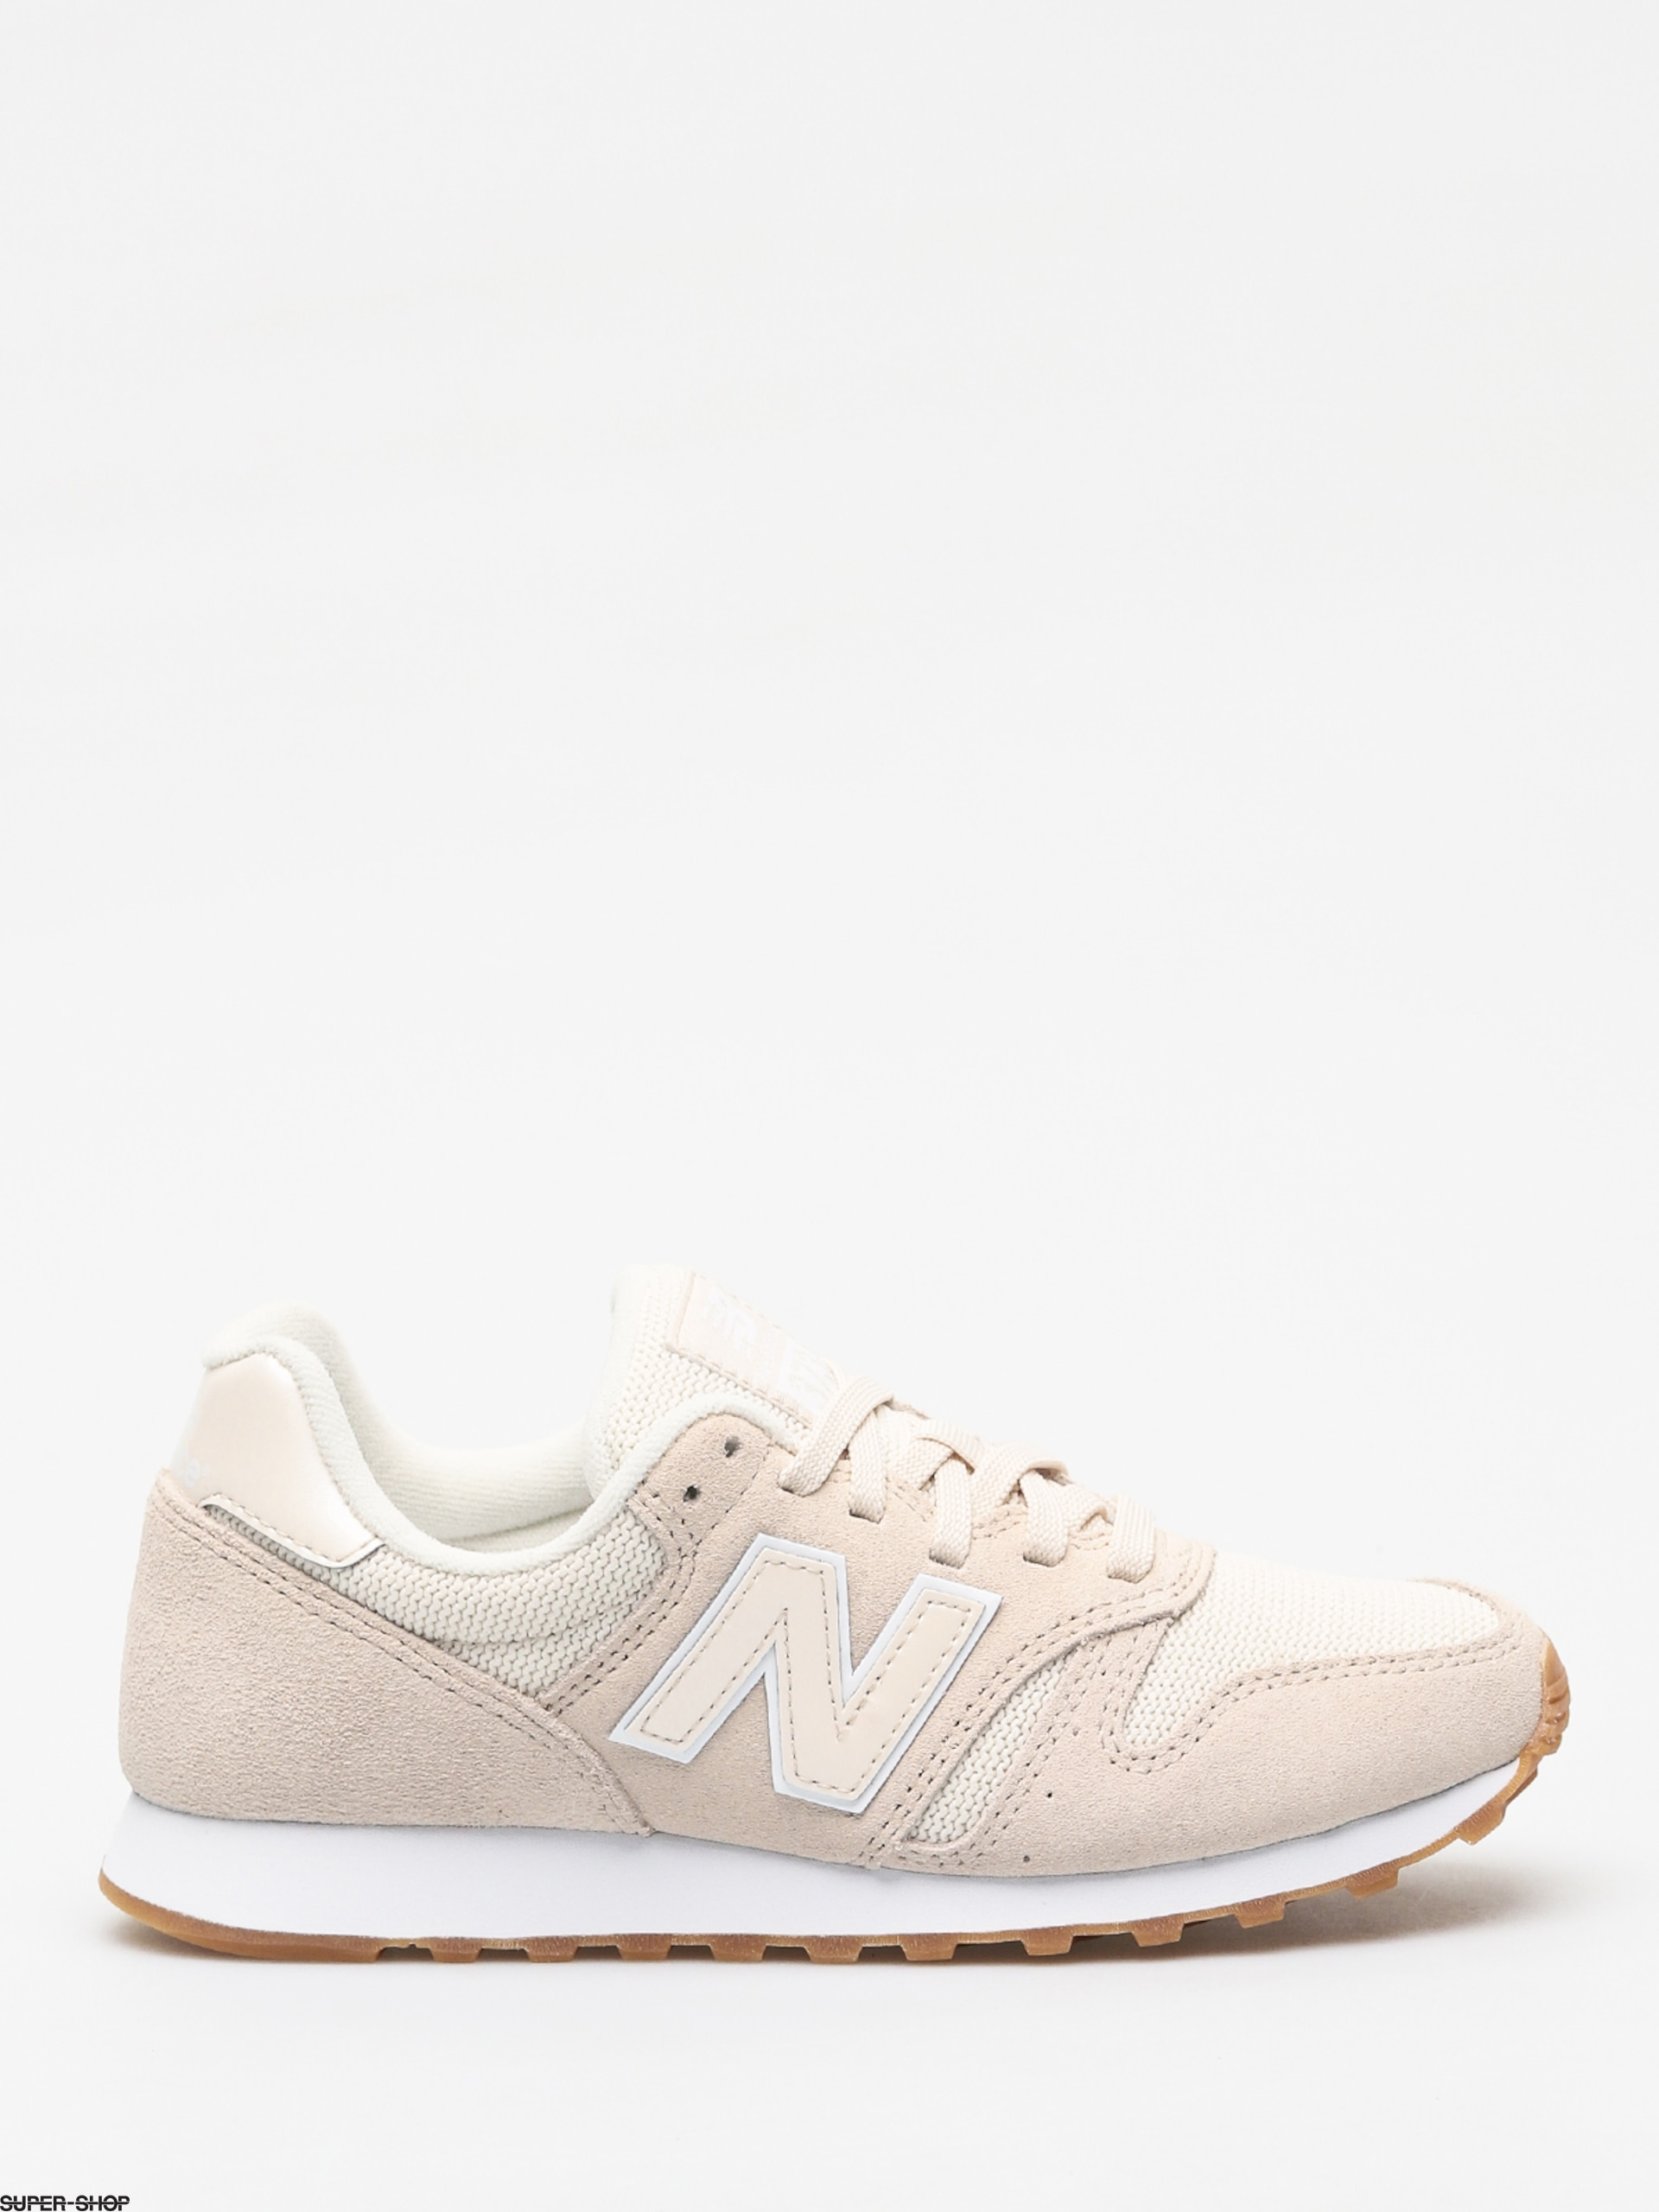 2019 clearance sale outlet for sale offer New Balance 373 Shoes Wmn (off white)